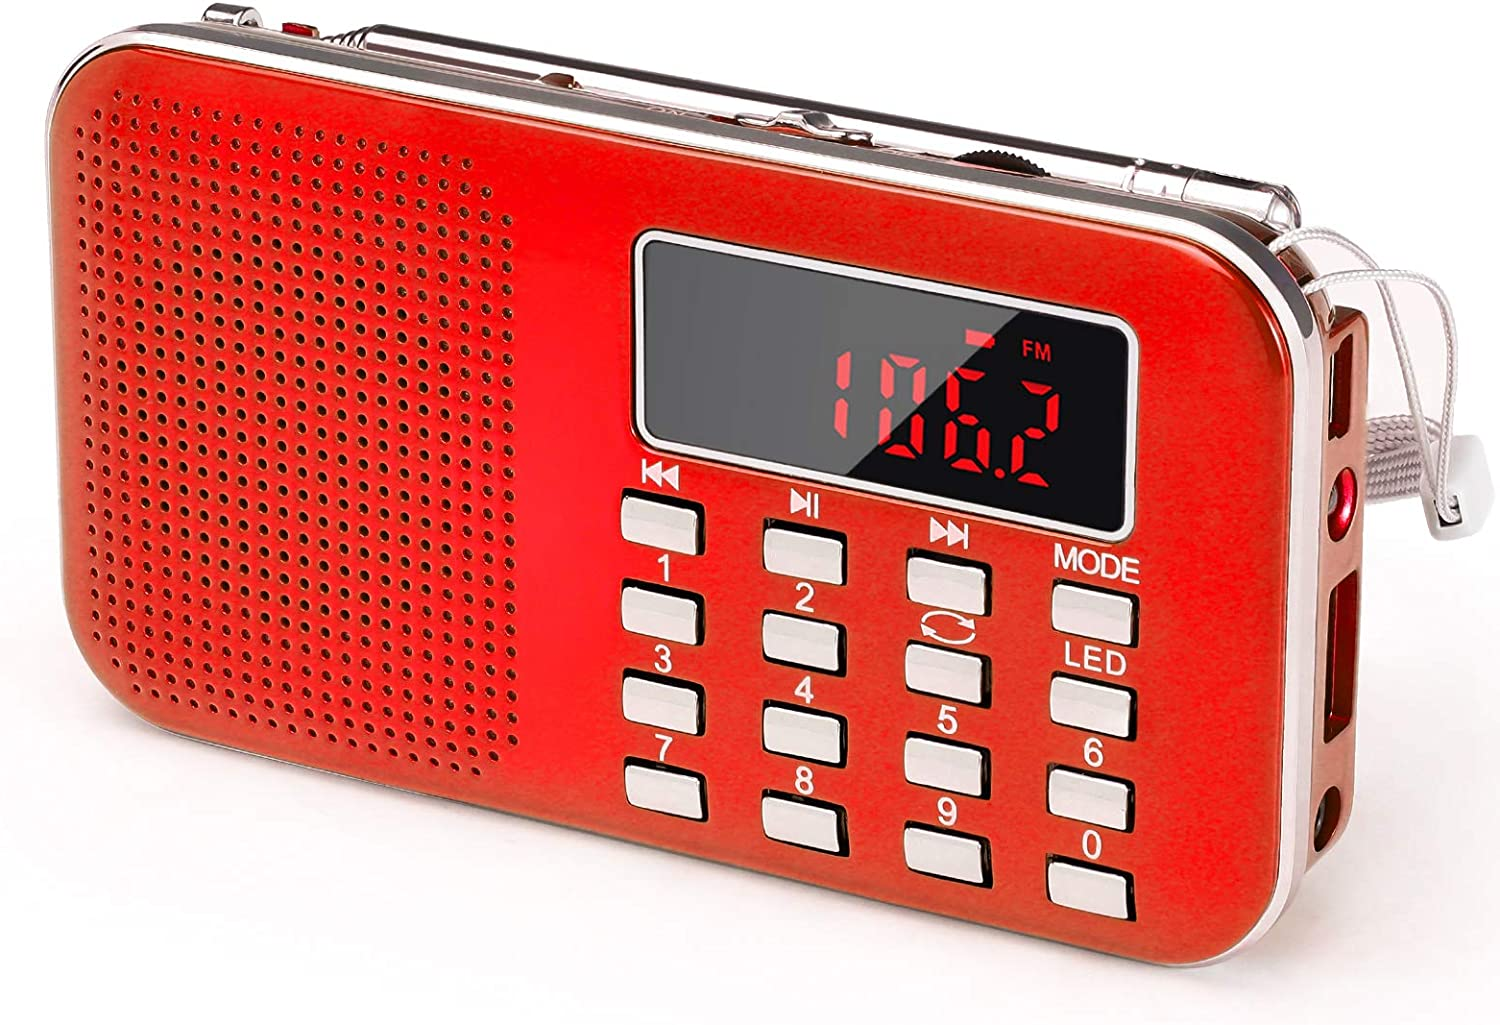 Digital Radio Speaker Music Player Support Micro SD//TF Card//USB RED PRUNUS J-908 Mini Portable Pocket AM//FM Radio with LED Flashlight 1200mAh Rechargeable Battery Operated Auto Scan Save